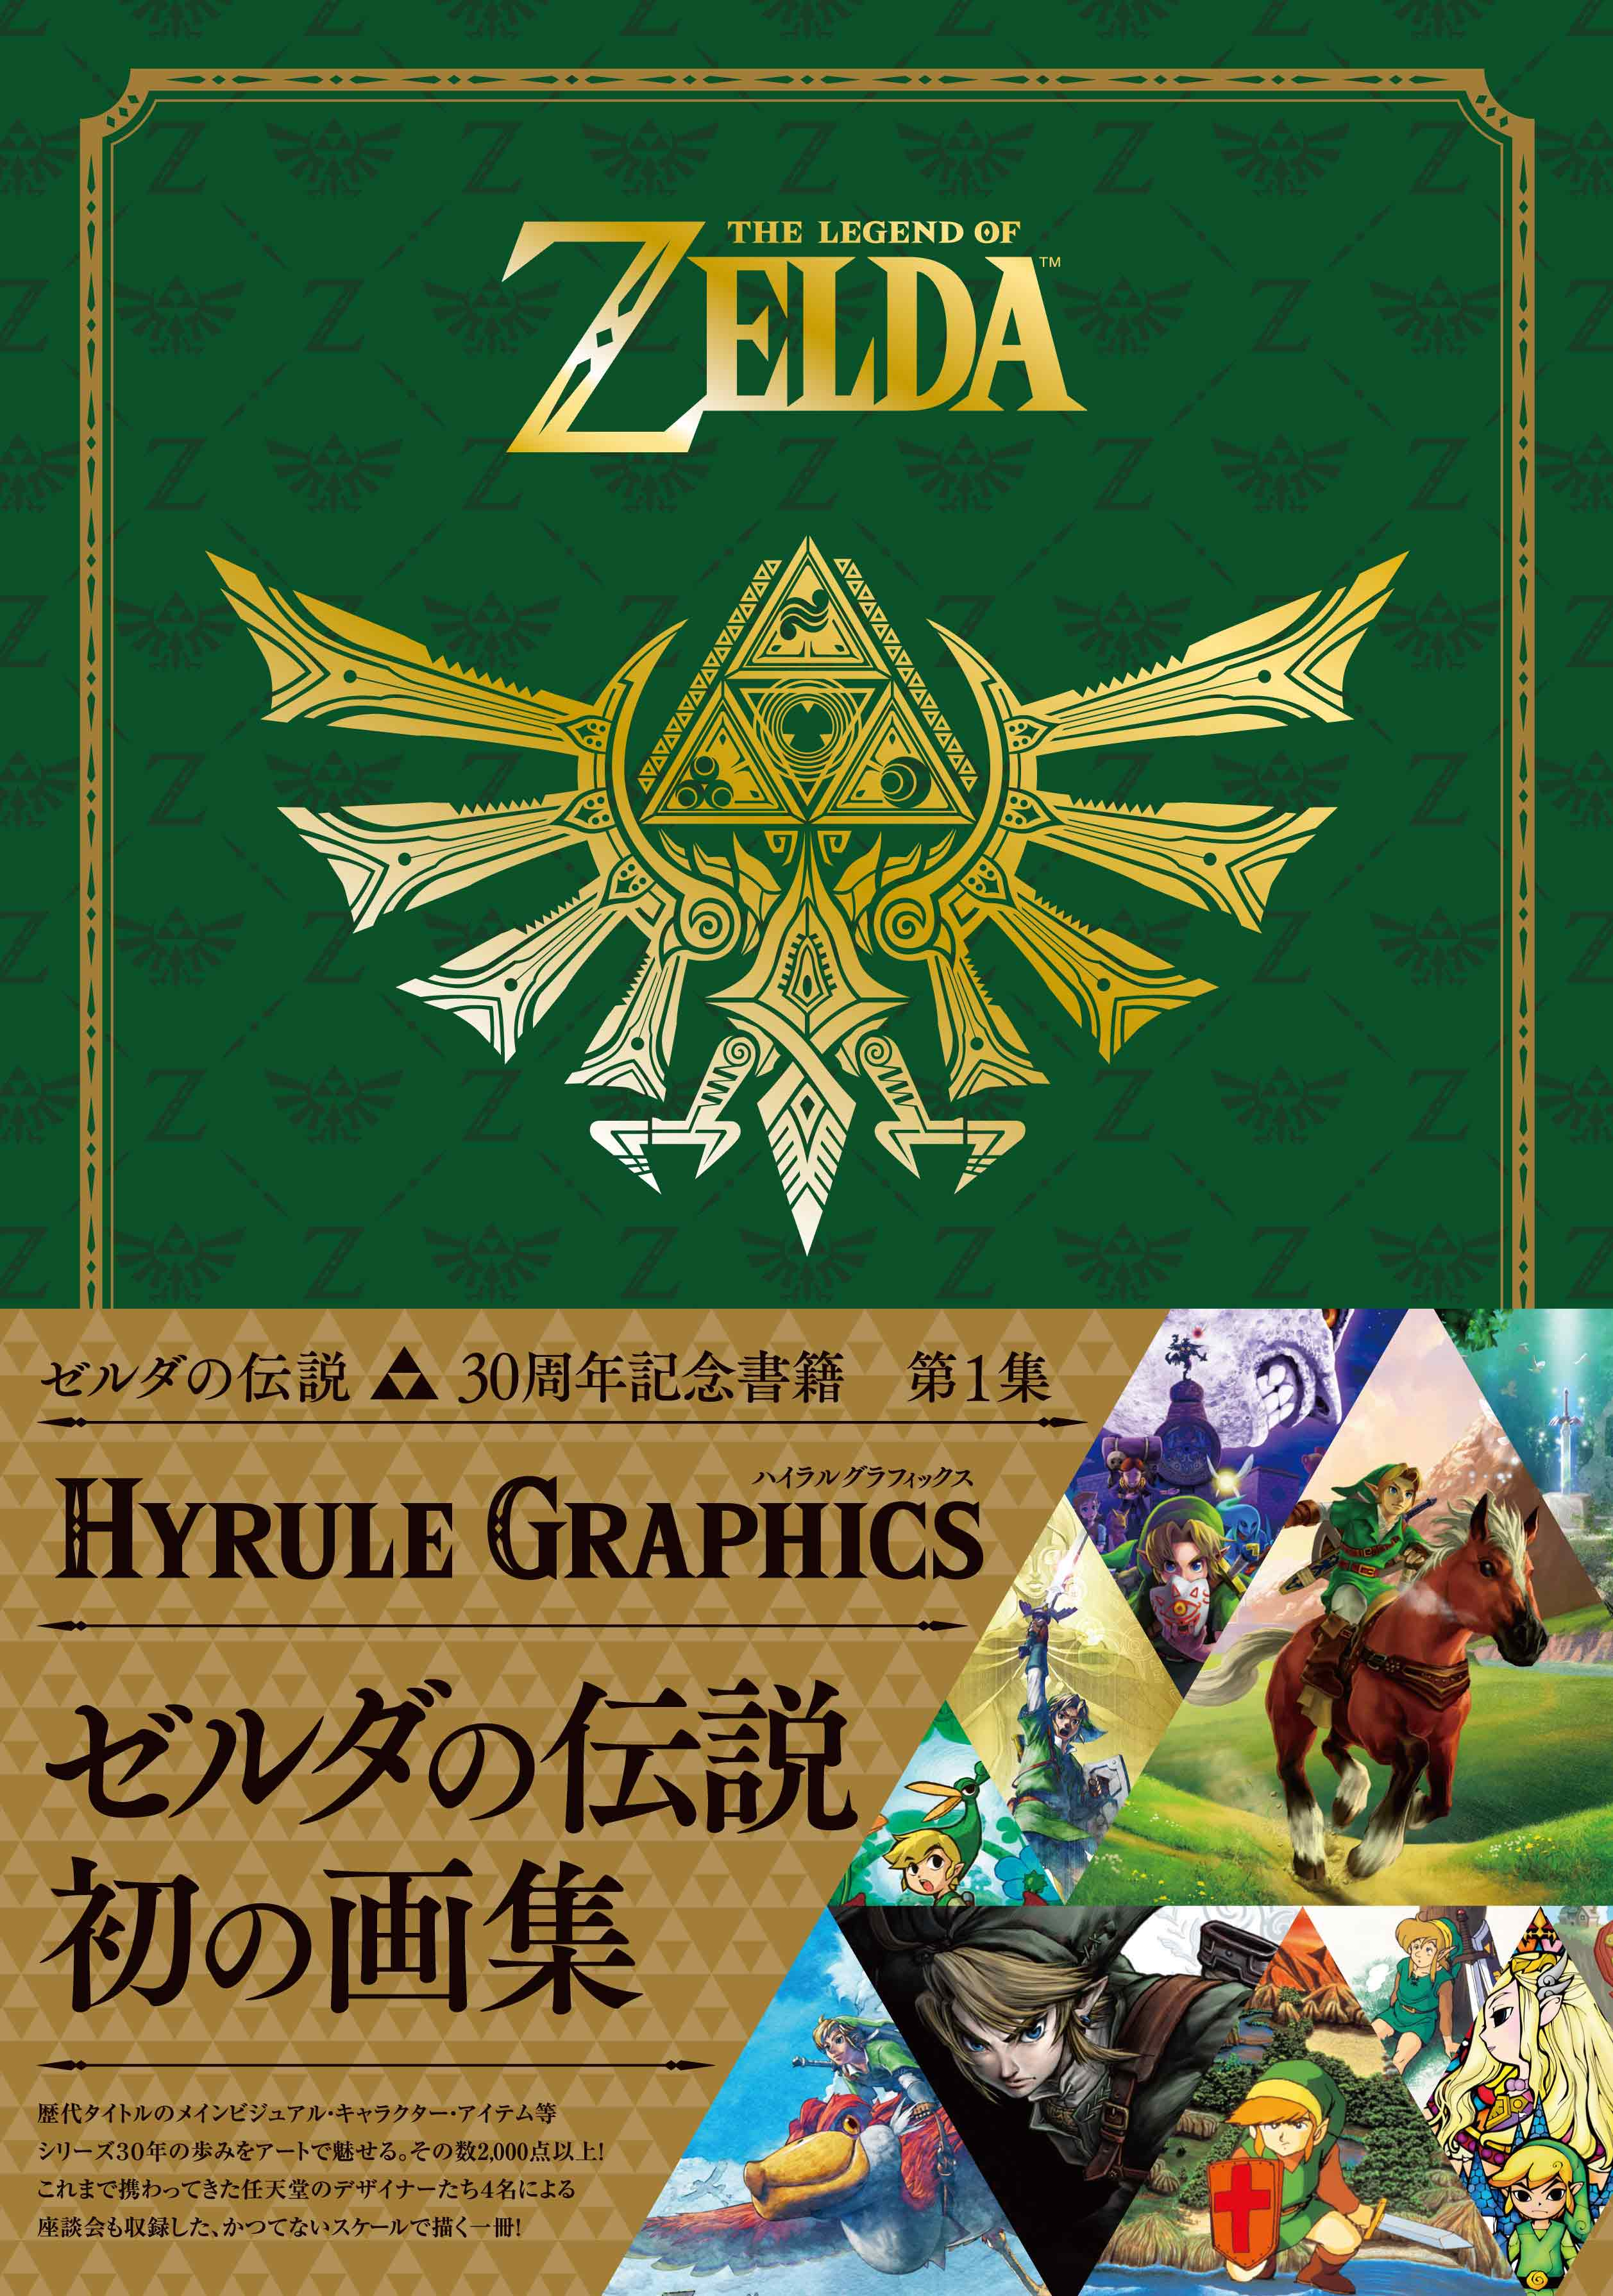 The Legend of Zelda: Hyrule Graphics on the Way 1